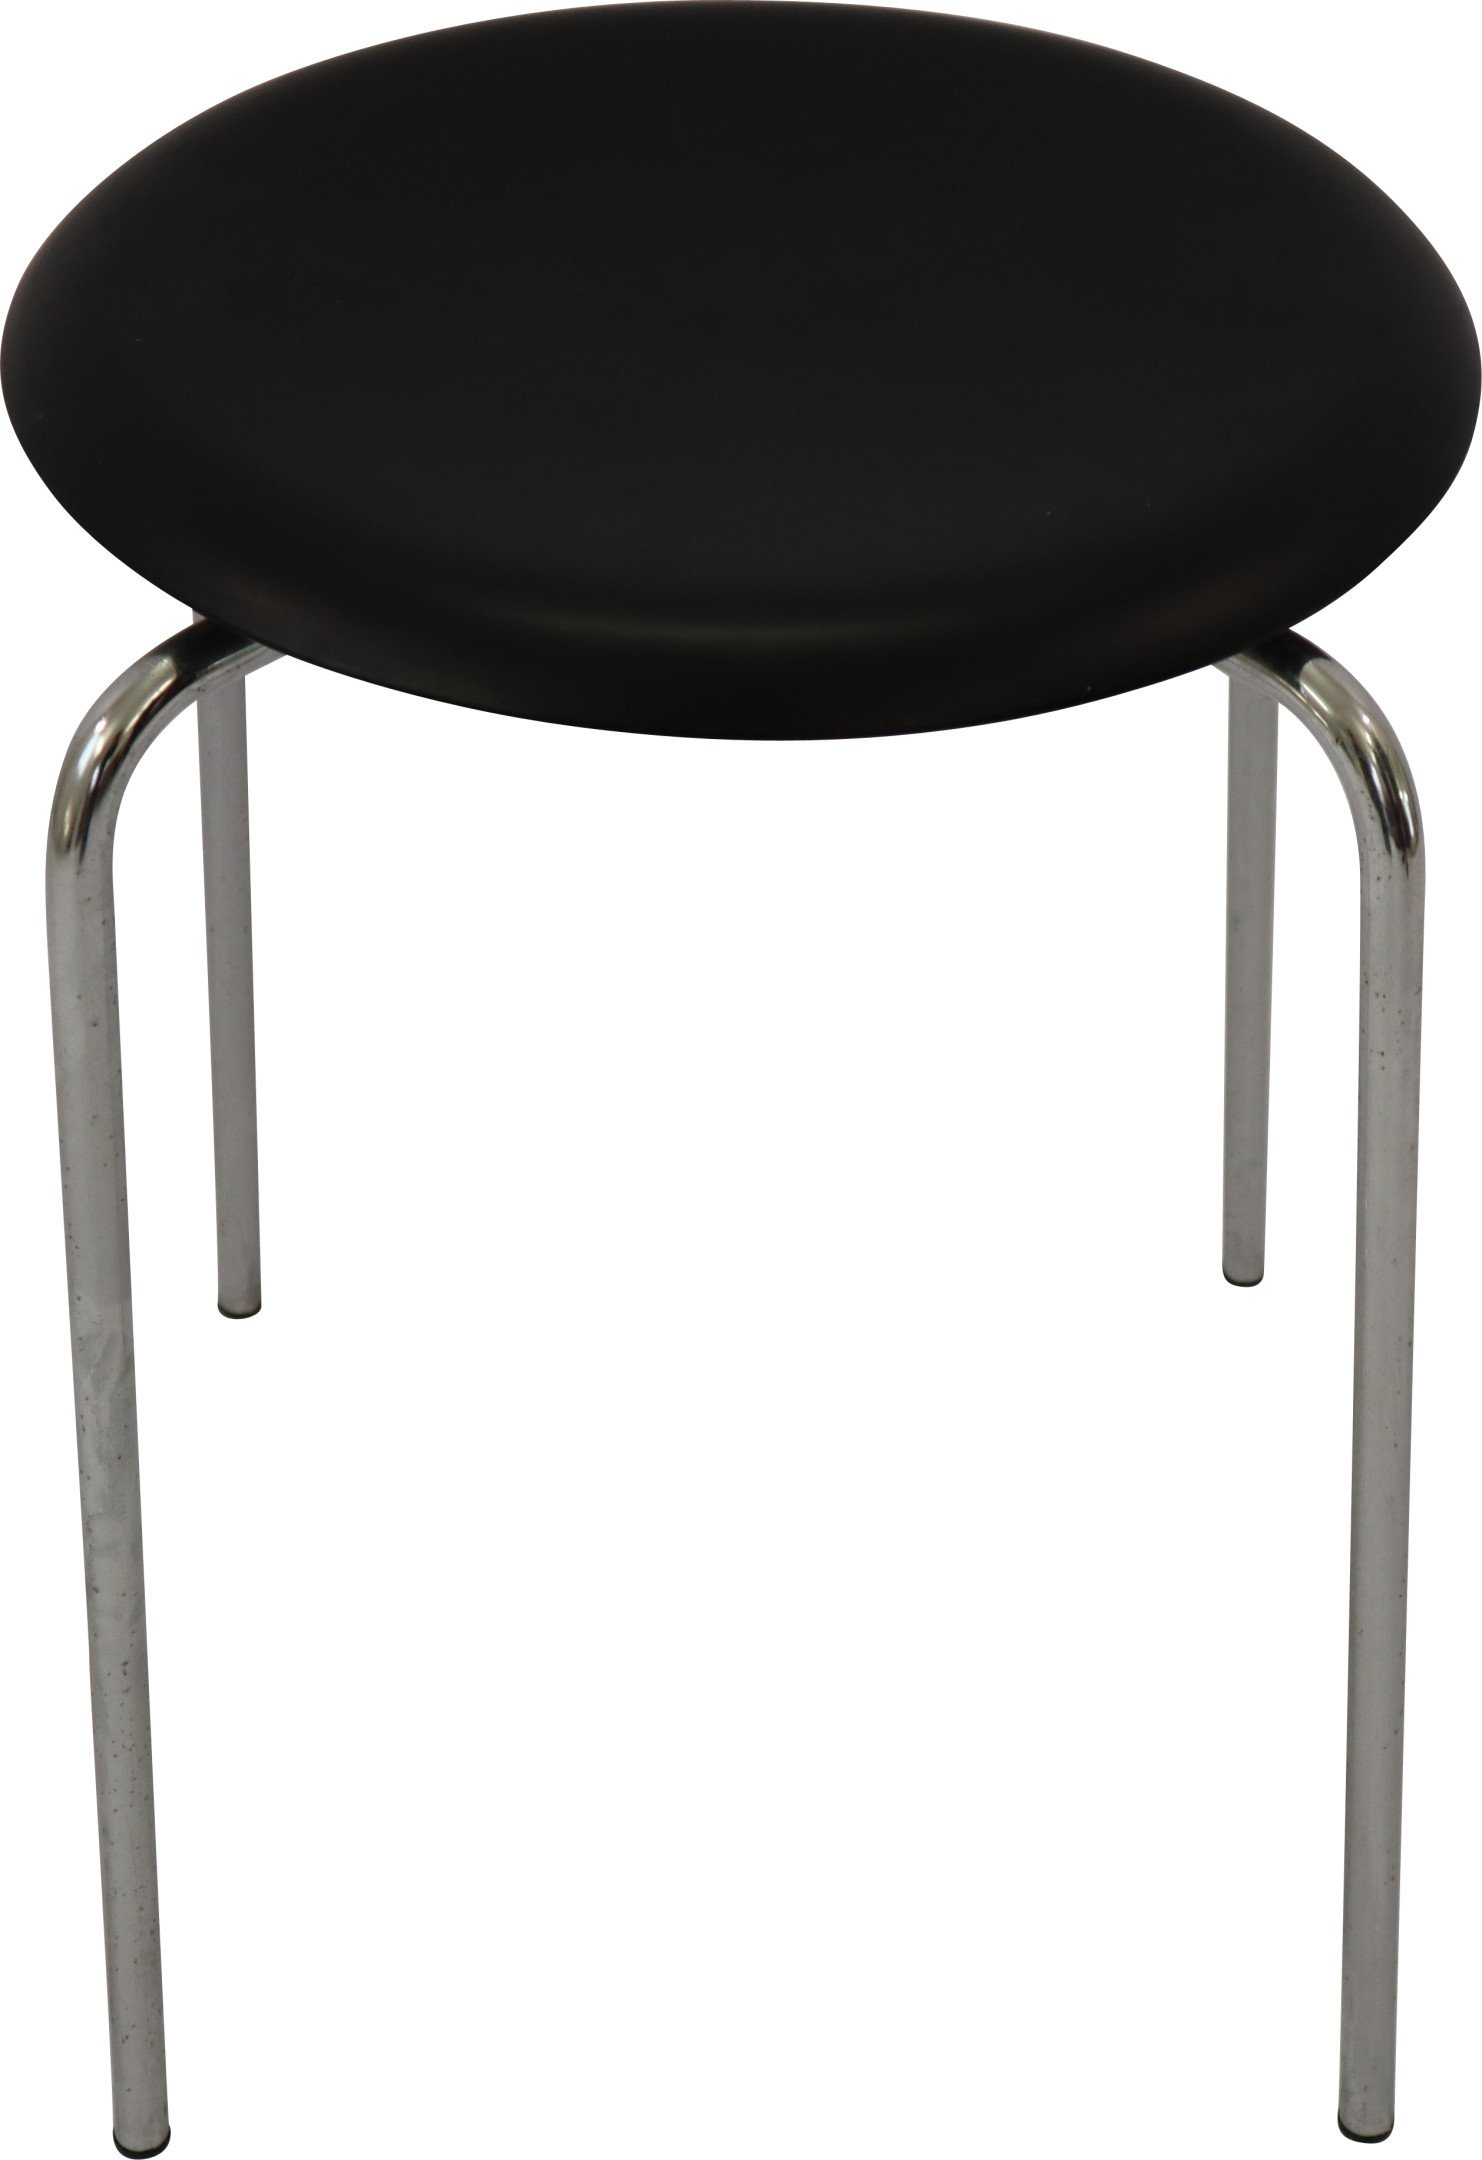 3170 Stool by A. Jacobsen, 1950s